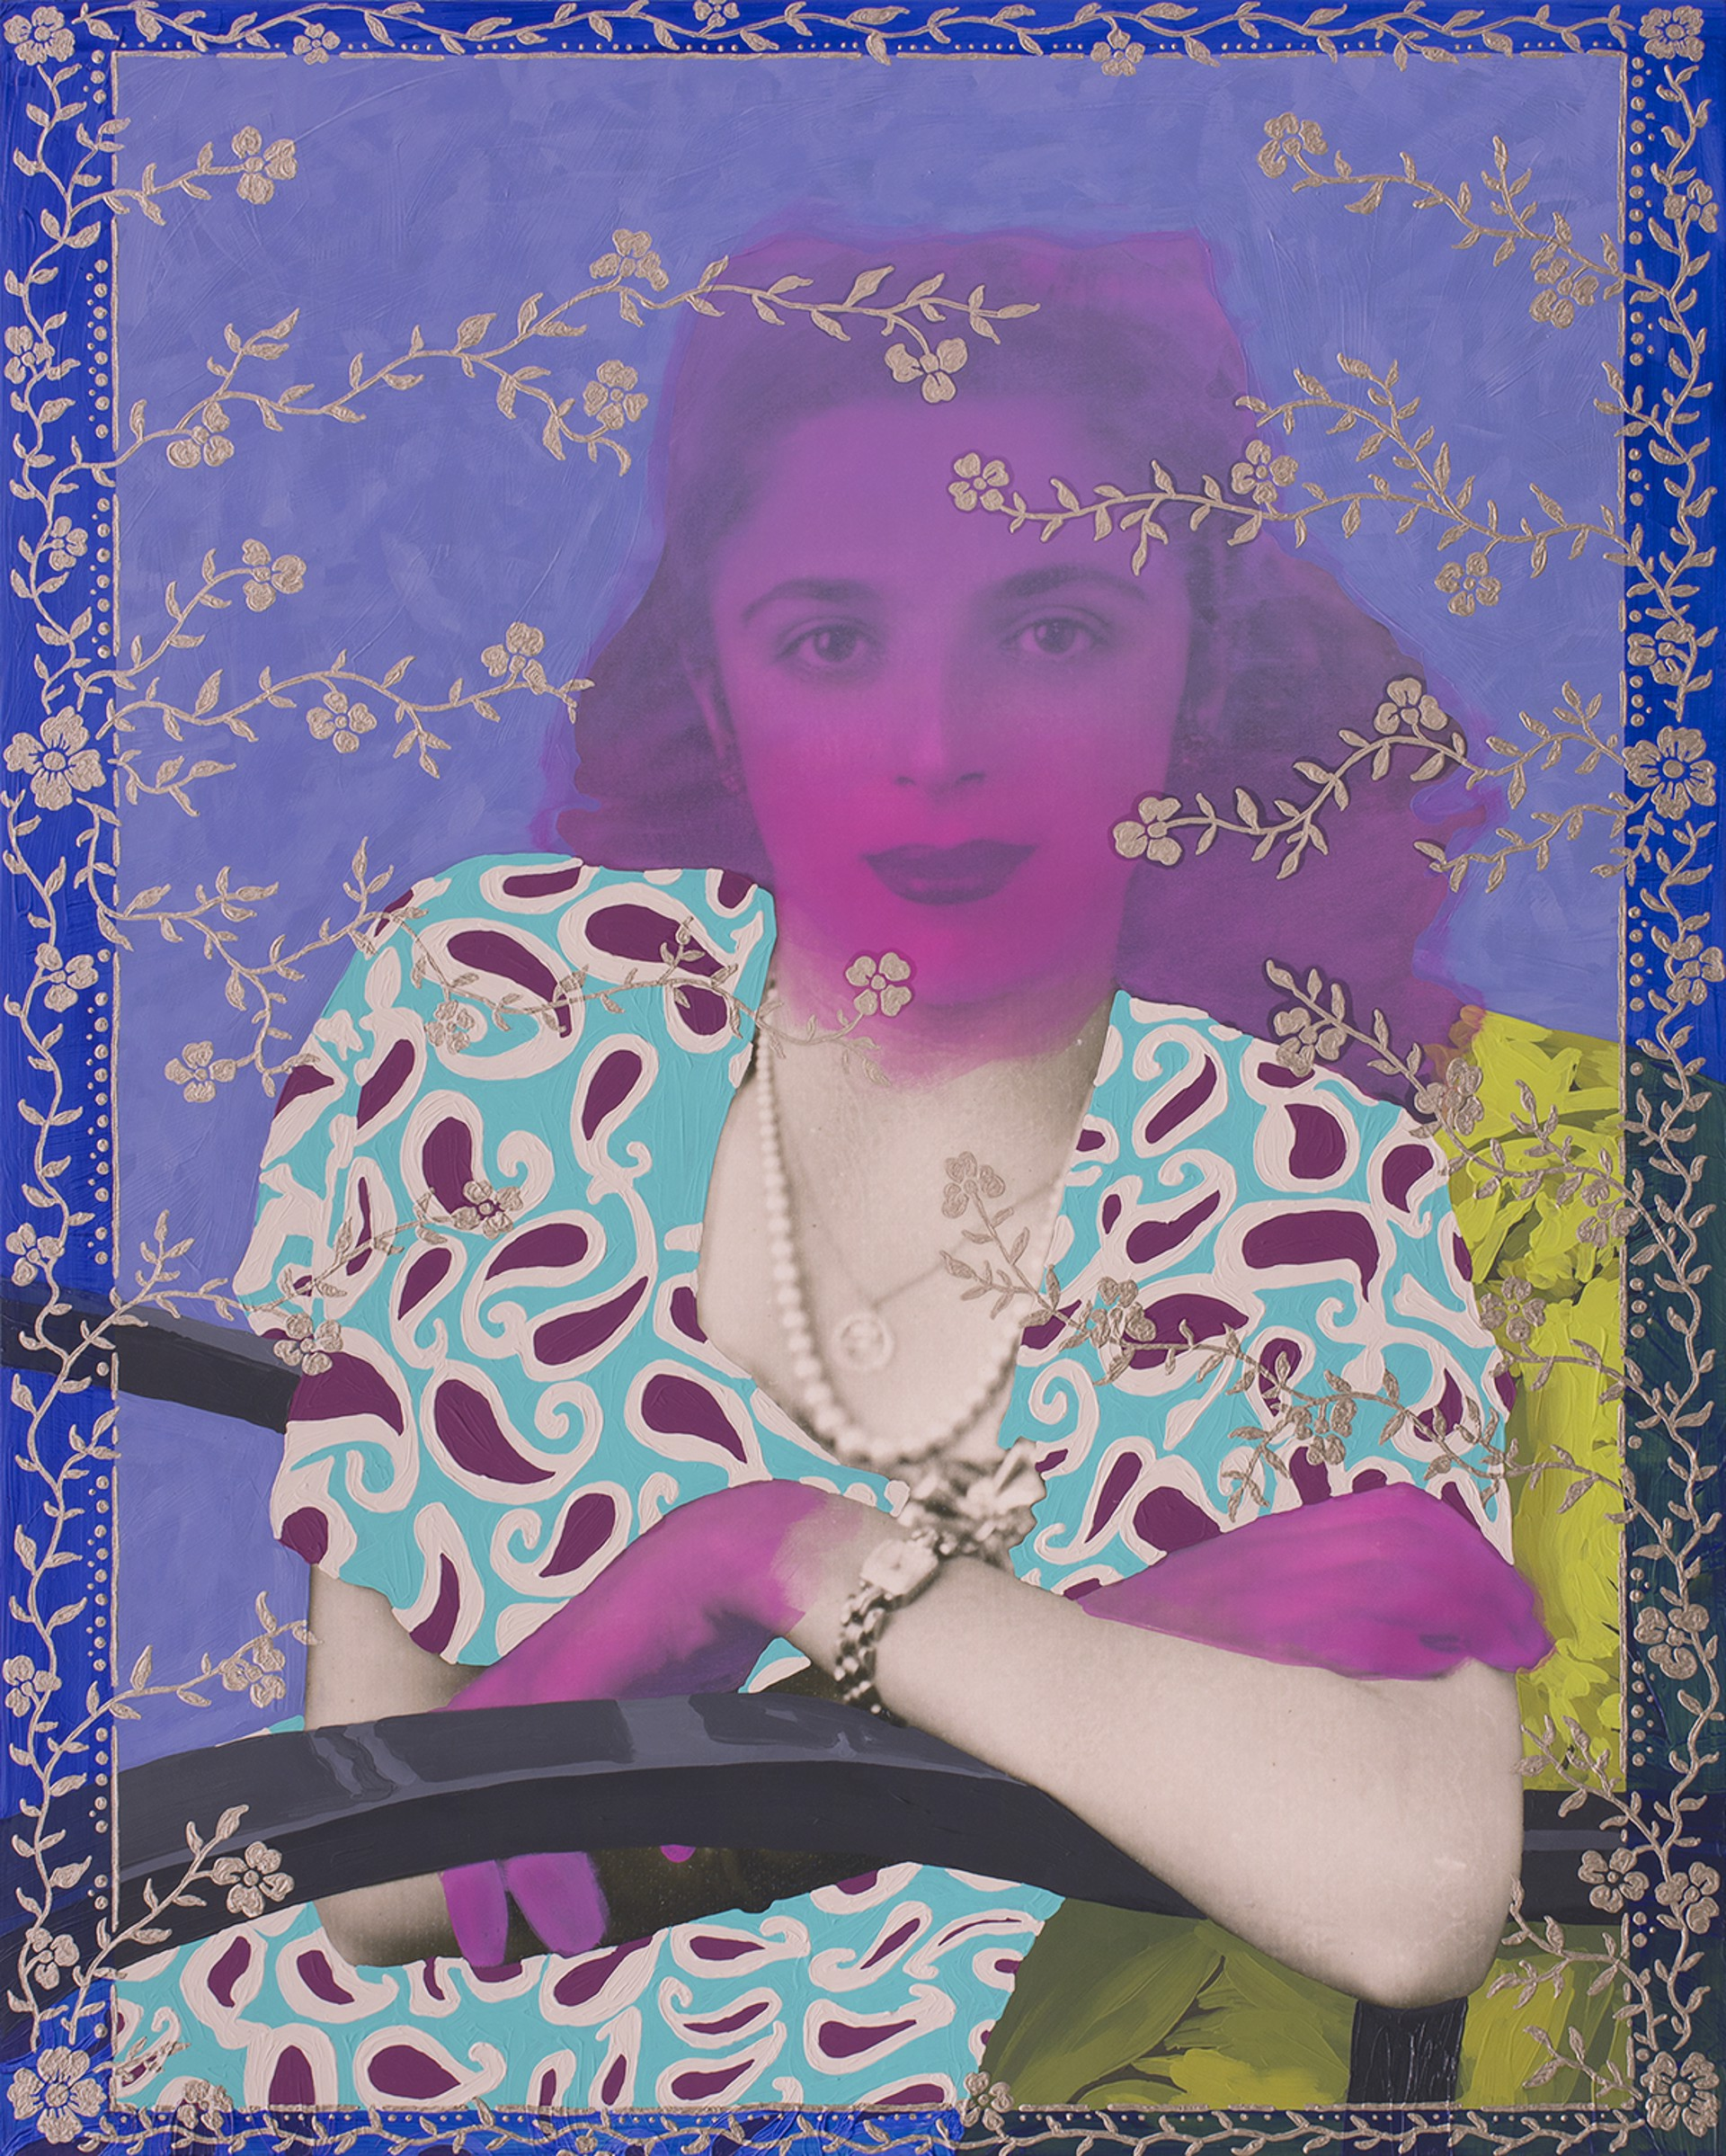 Untitled (Paisley and Border) by Daisy Patton